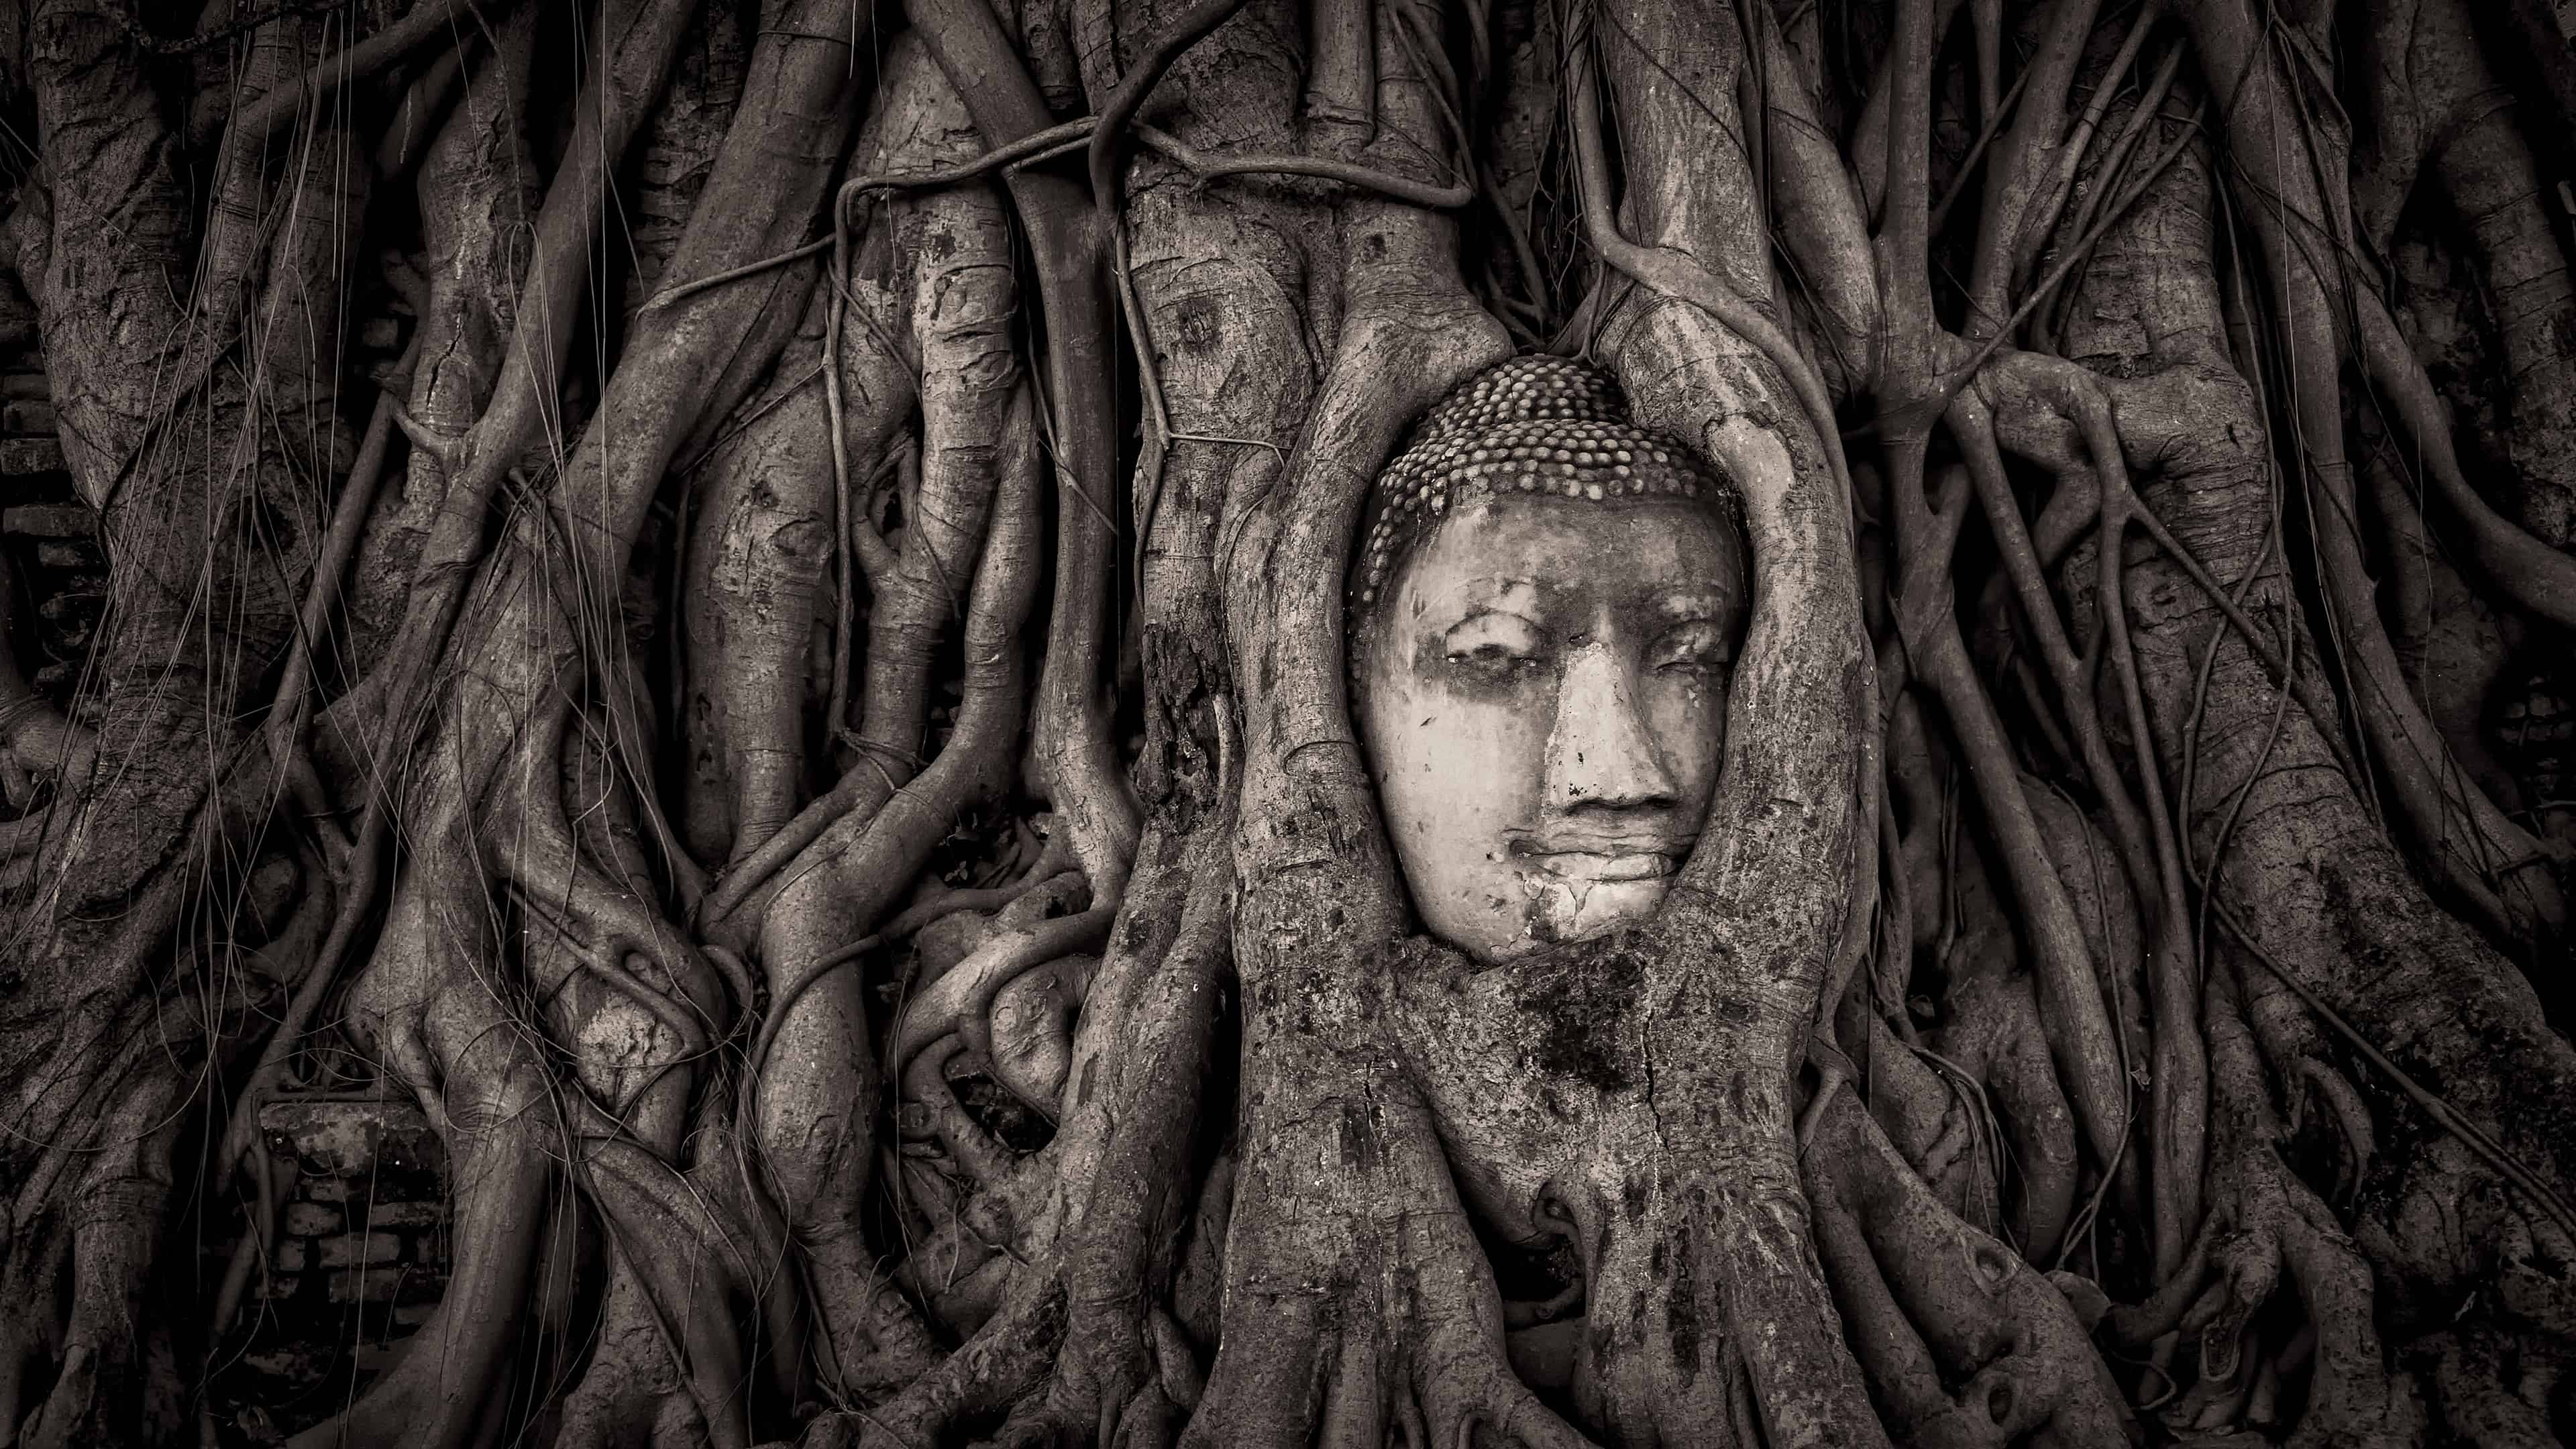 Buddha Head In Tree Roots Wat Mahathat Ayutthaya Thailand